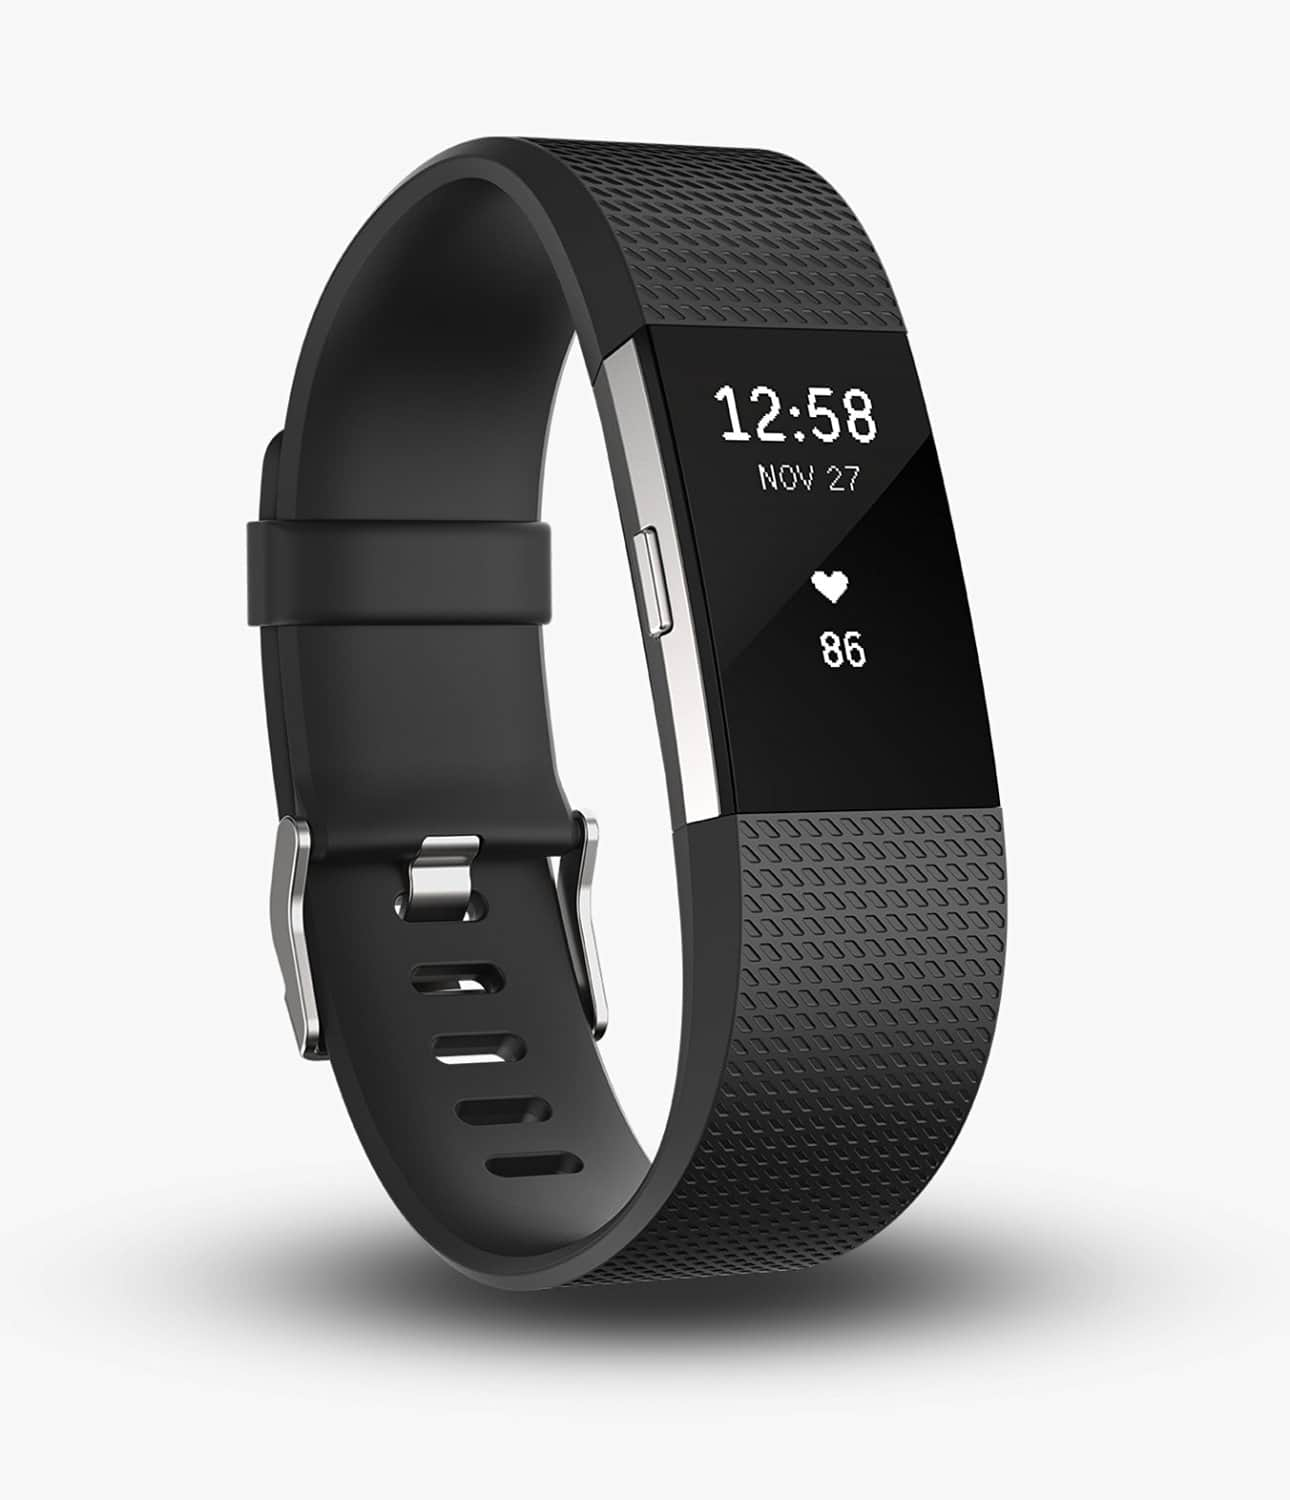 Fitbit Charge 2 Heart Rate + Fitness Wristband Pre-Order (various colors)  $114.60 + Free S/H